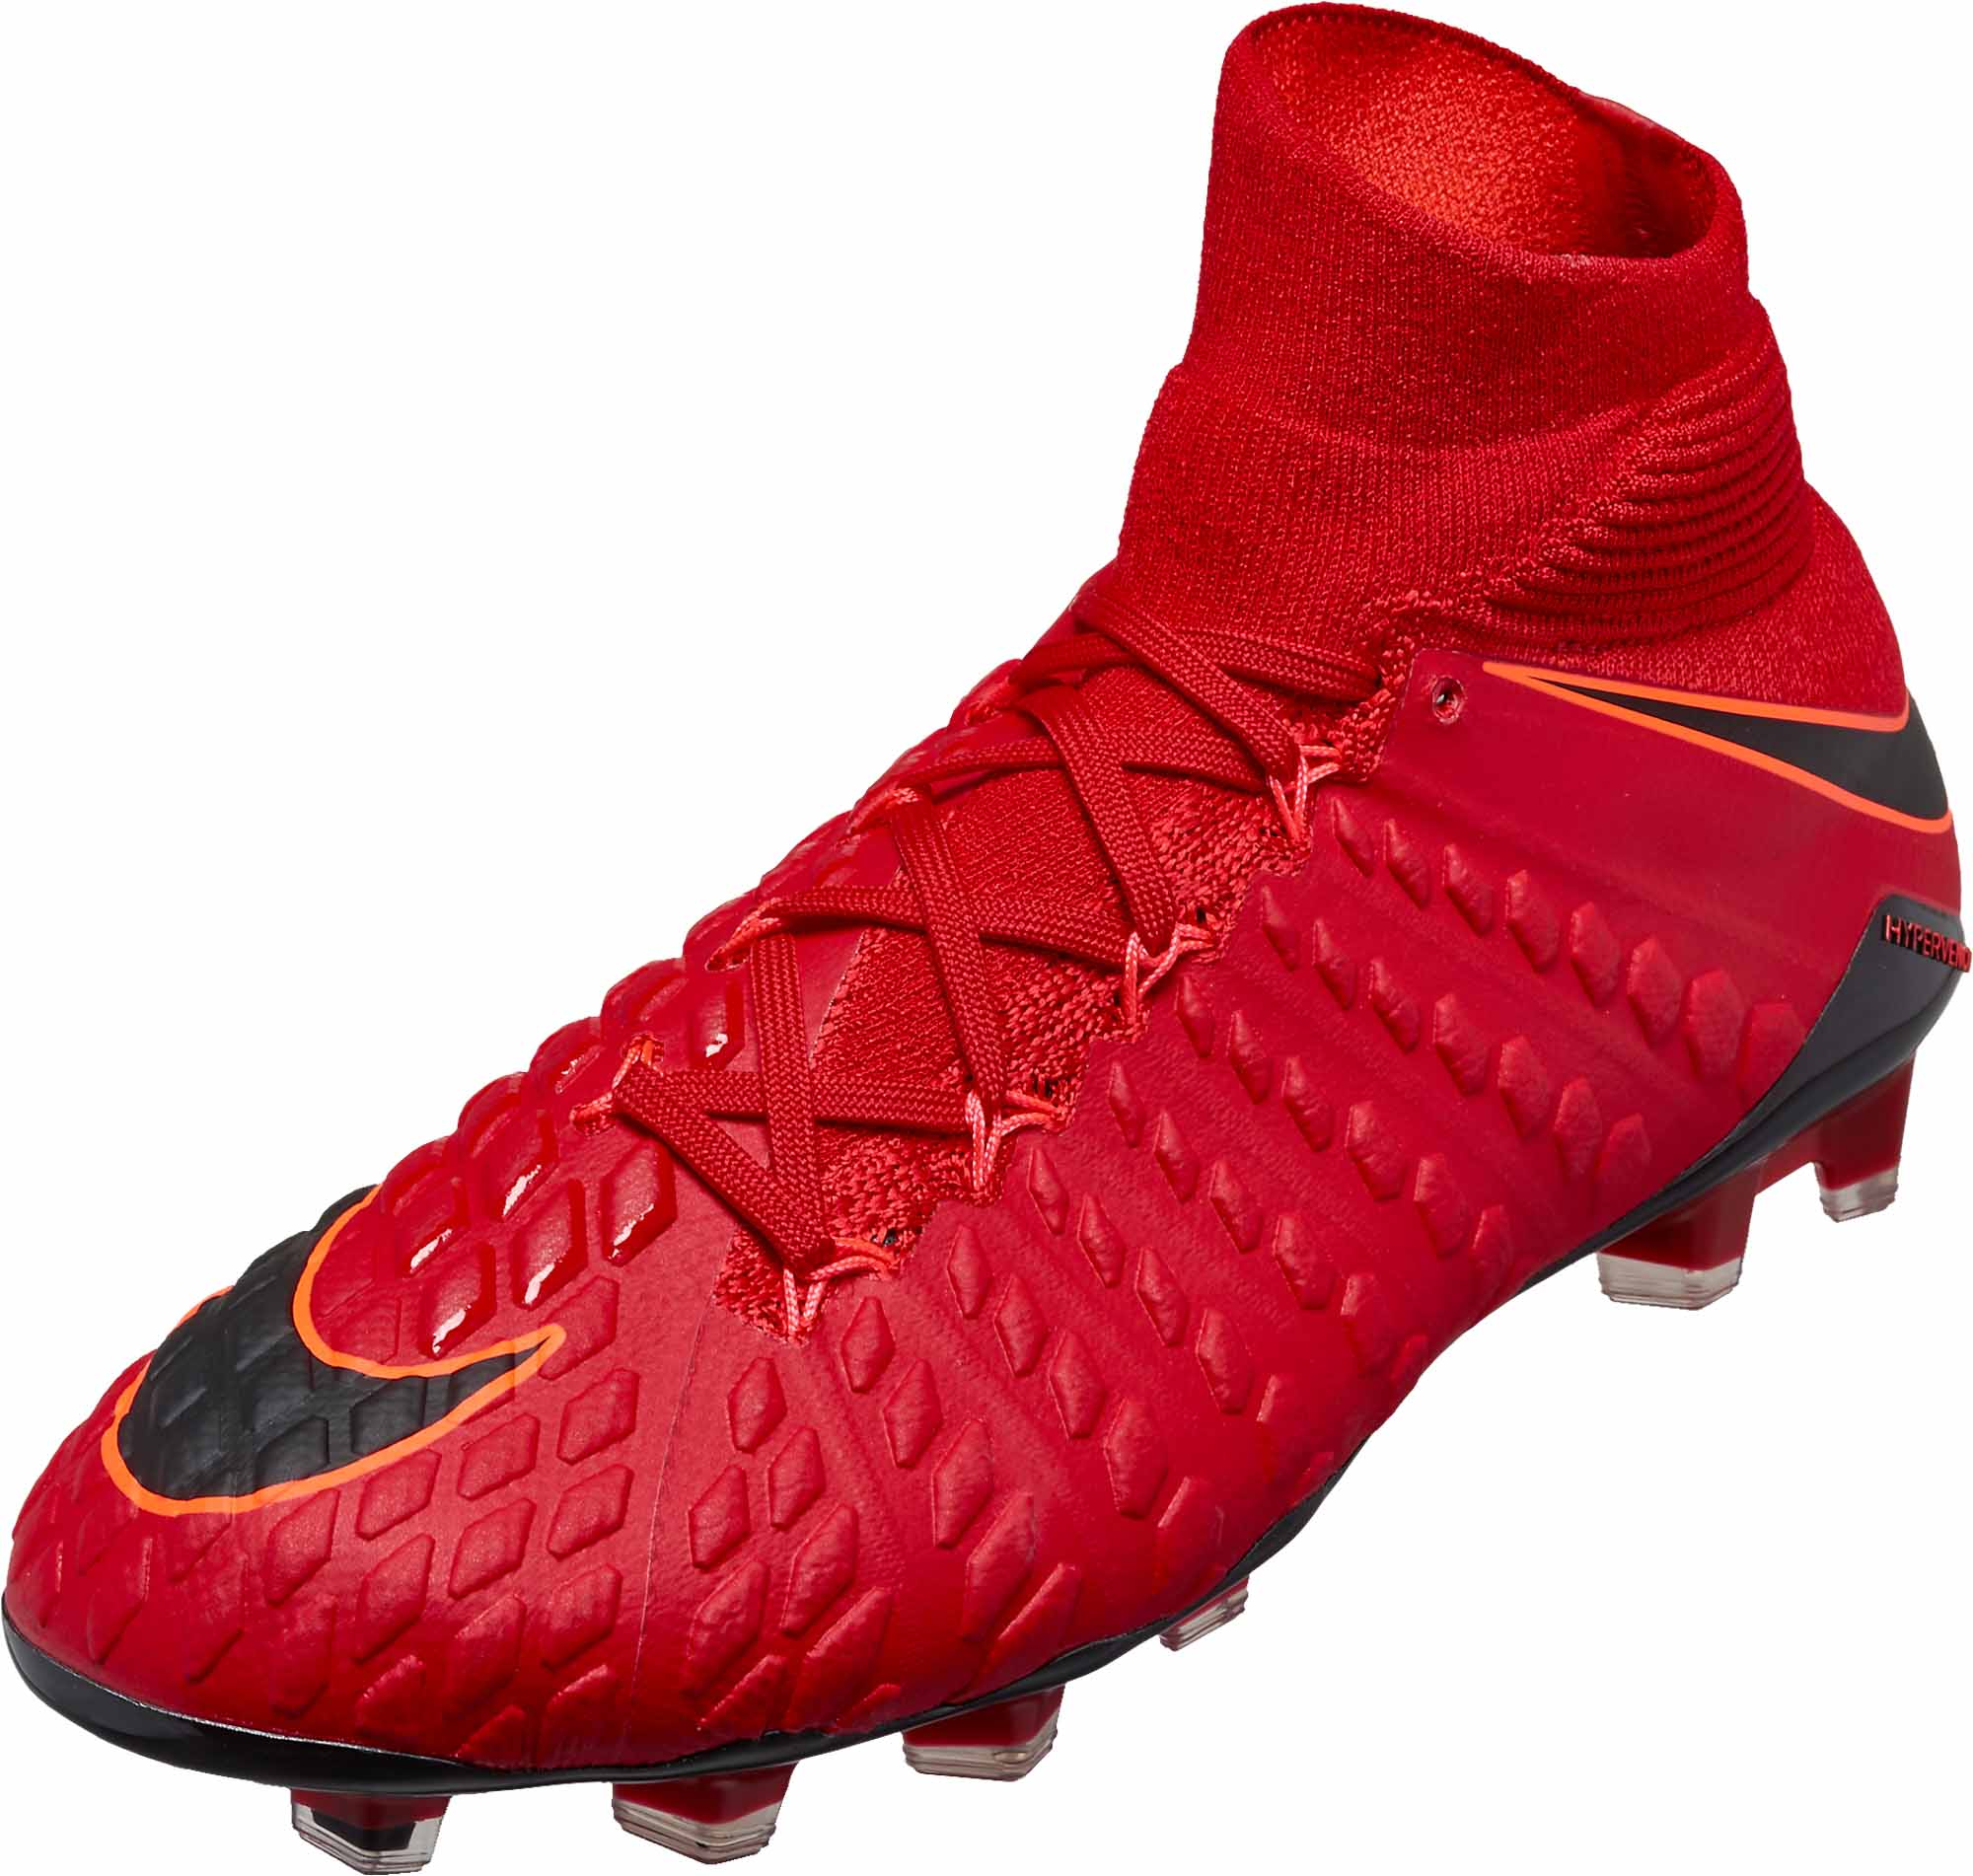 6277226a6702 Nike Hypervenom Phantom III DF FG – University Red/Black